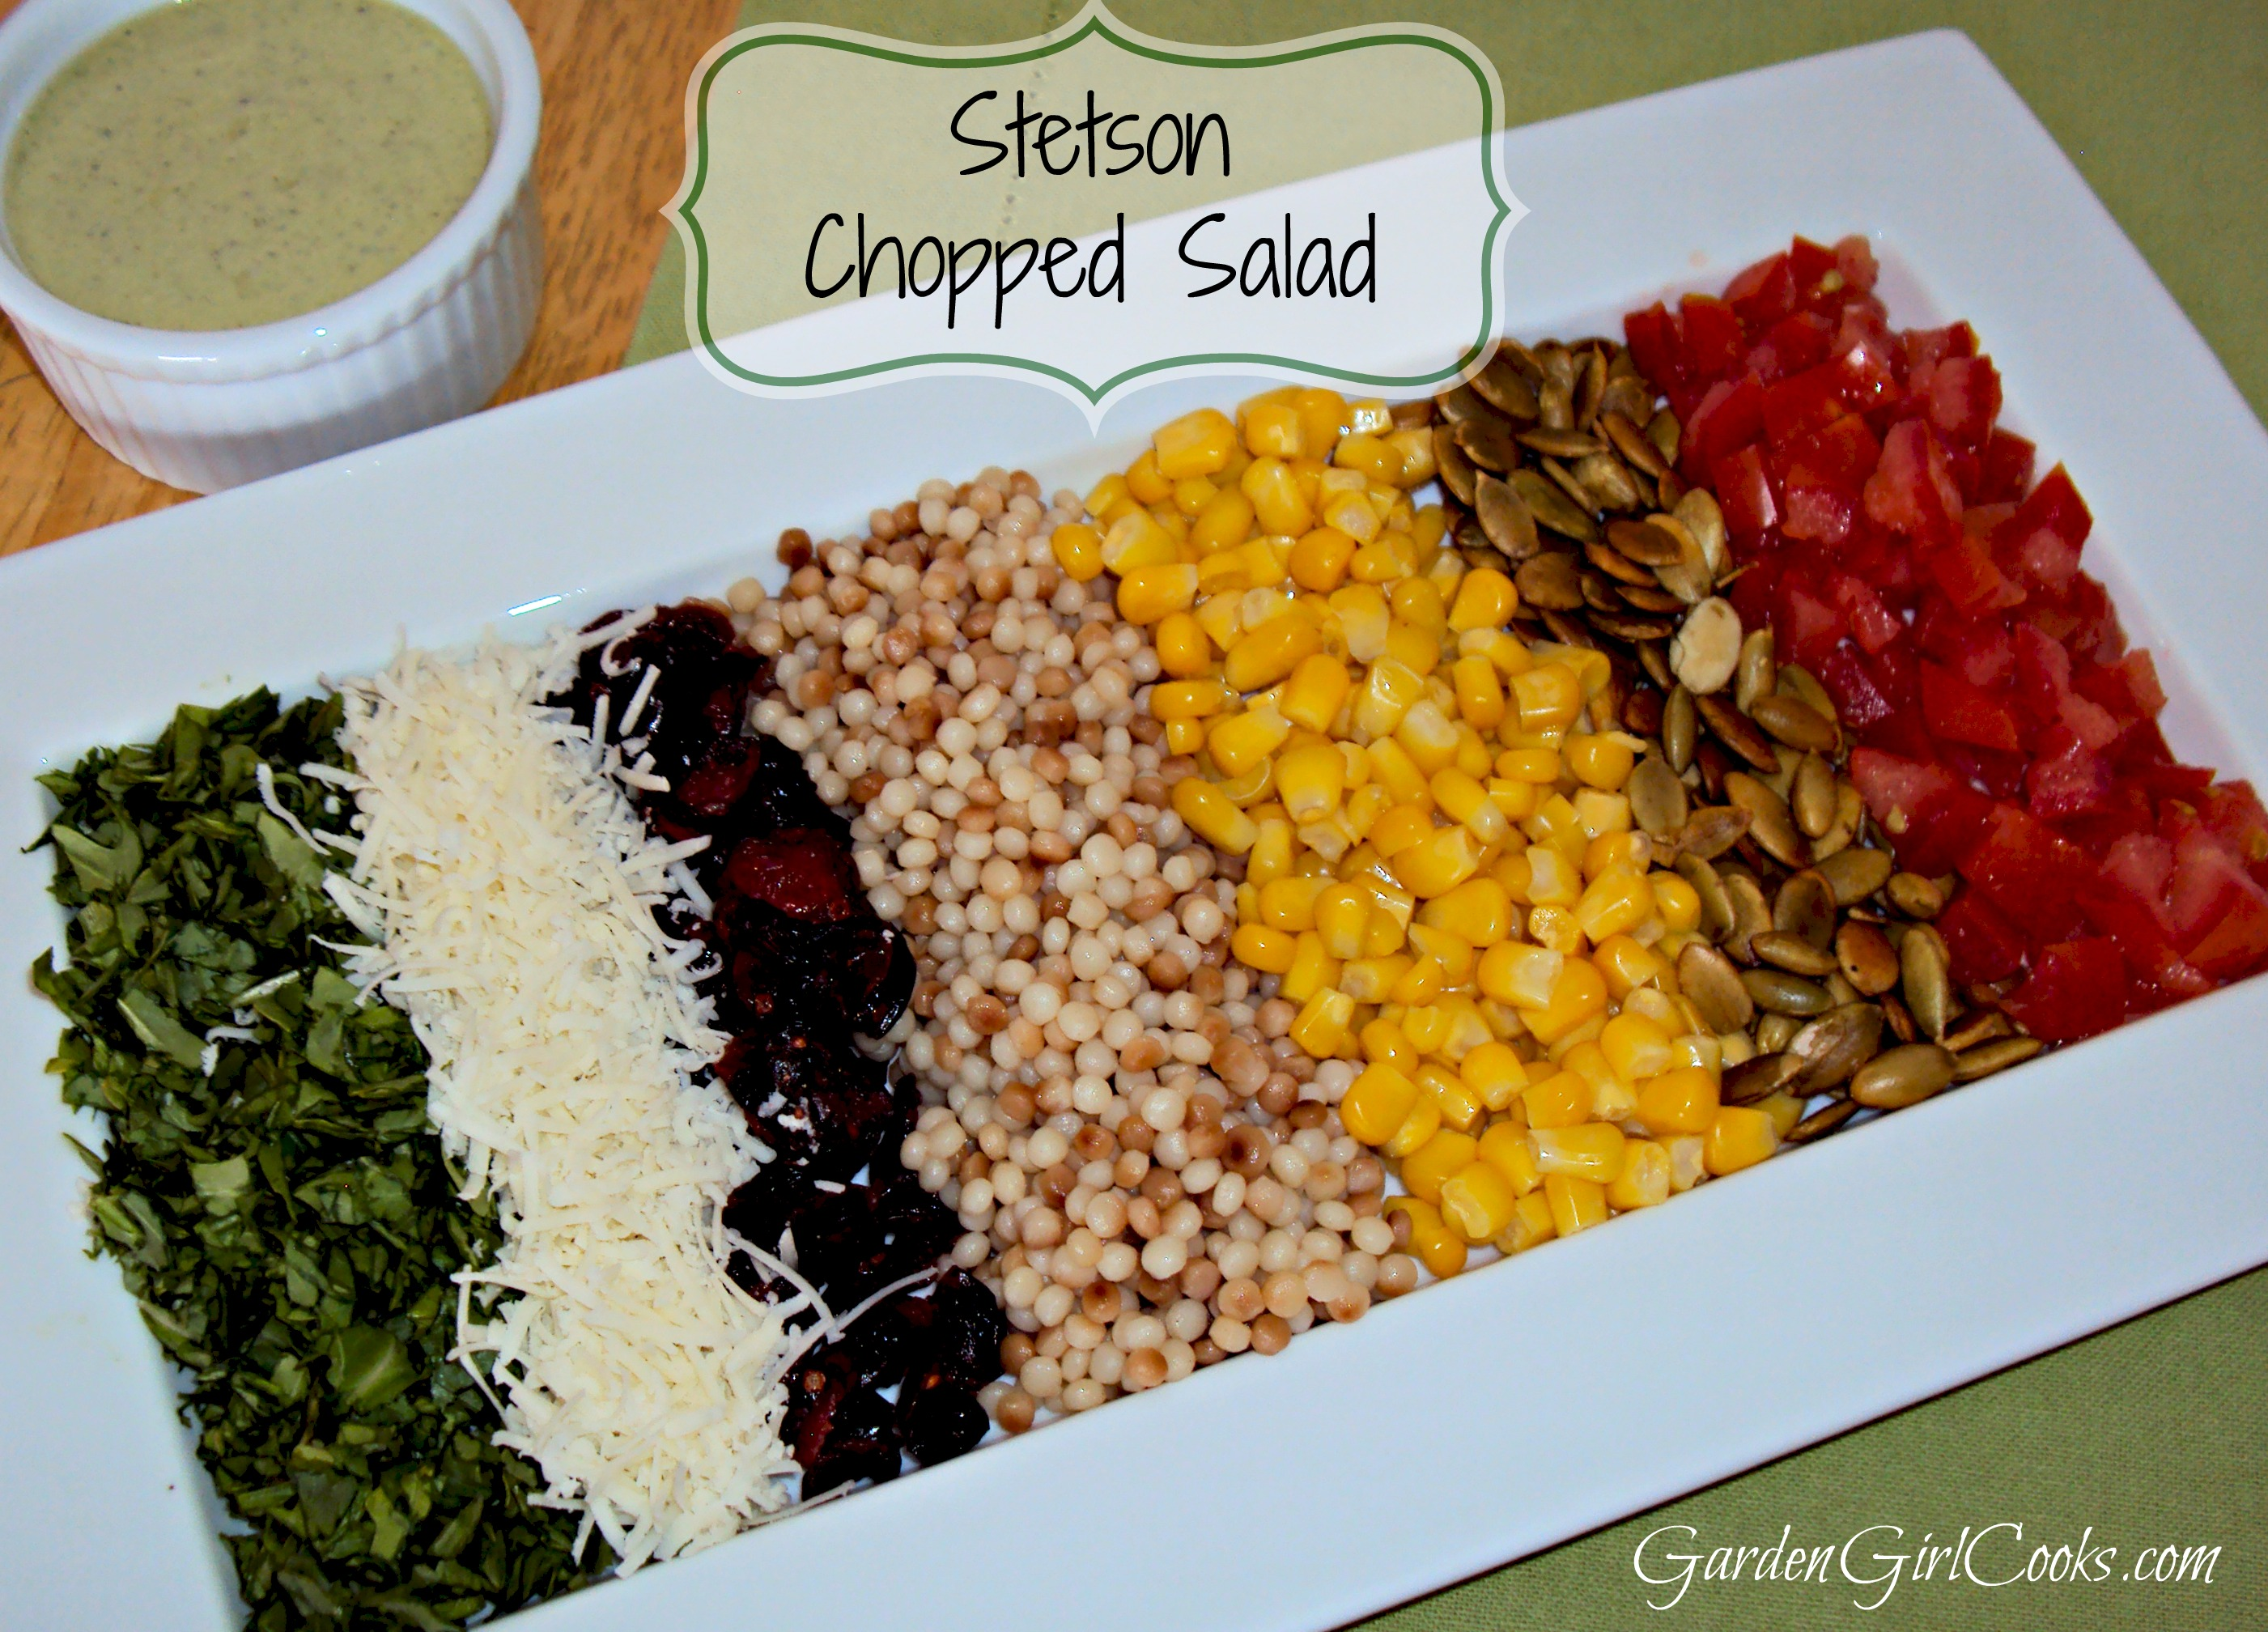 Stetson Chopped Salad